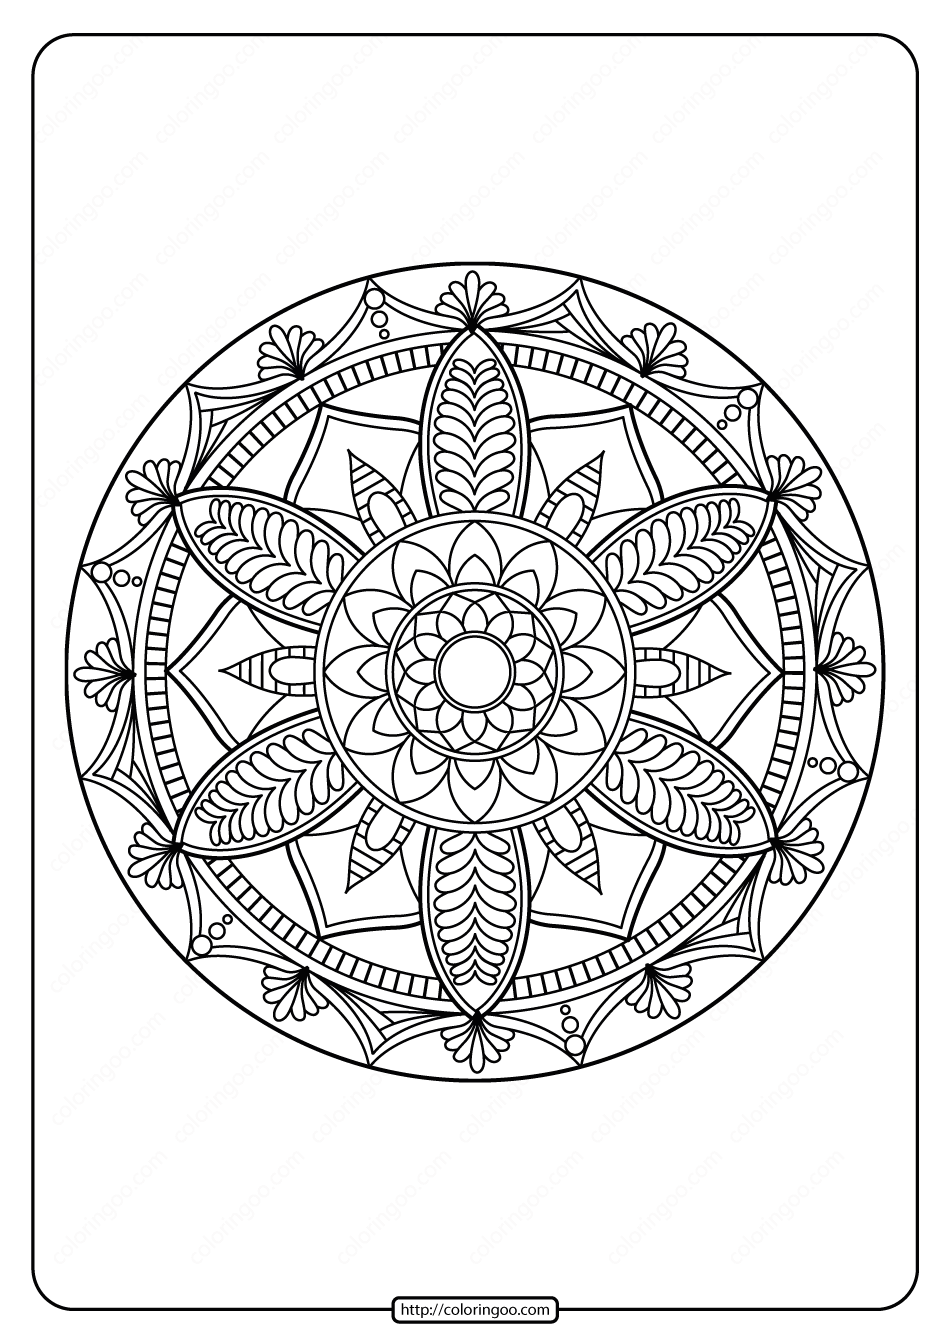 free mandala coloring pages for adults abstract mandala coloring page for adults diy printable pages mandala for free coloring adults